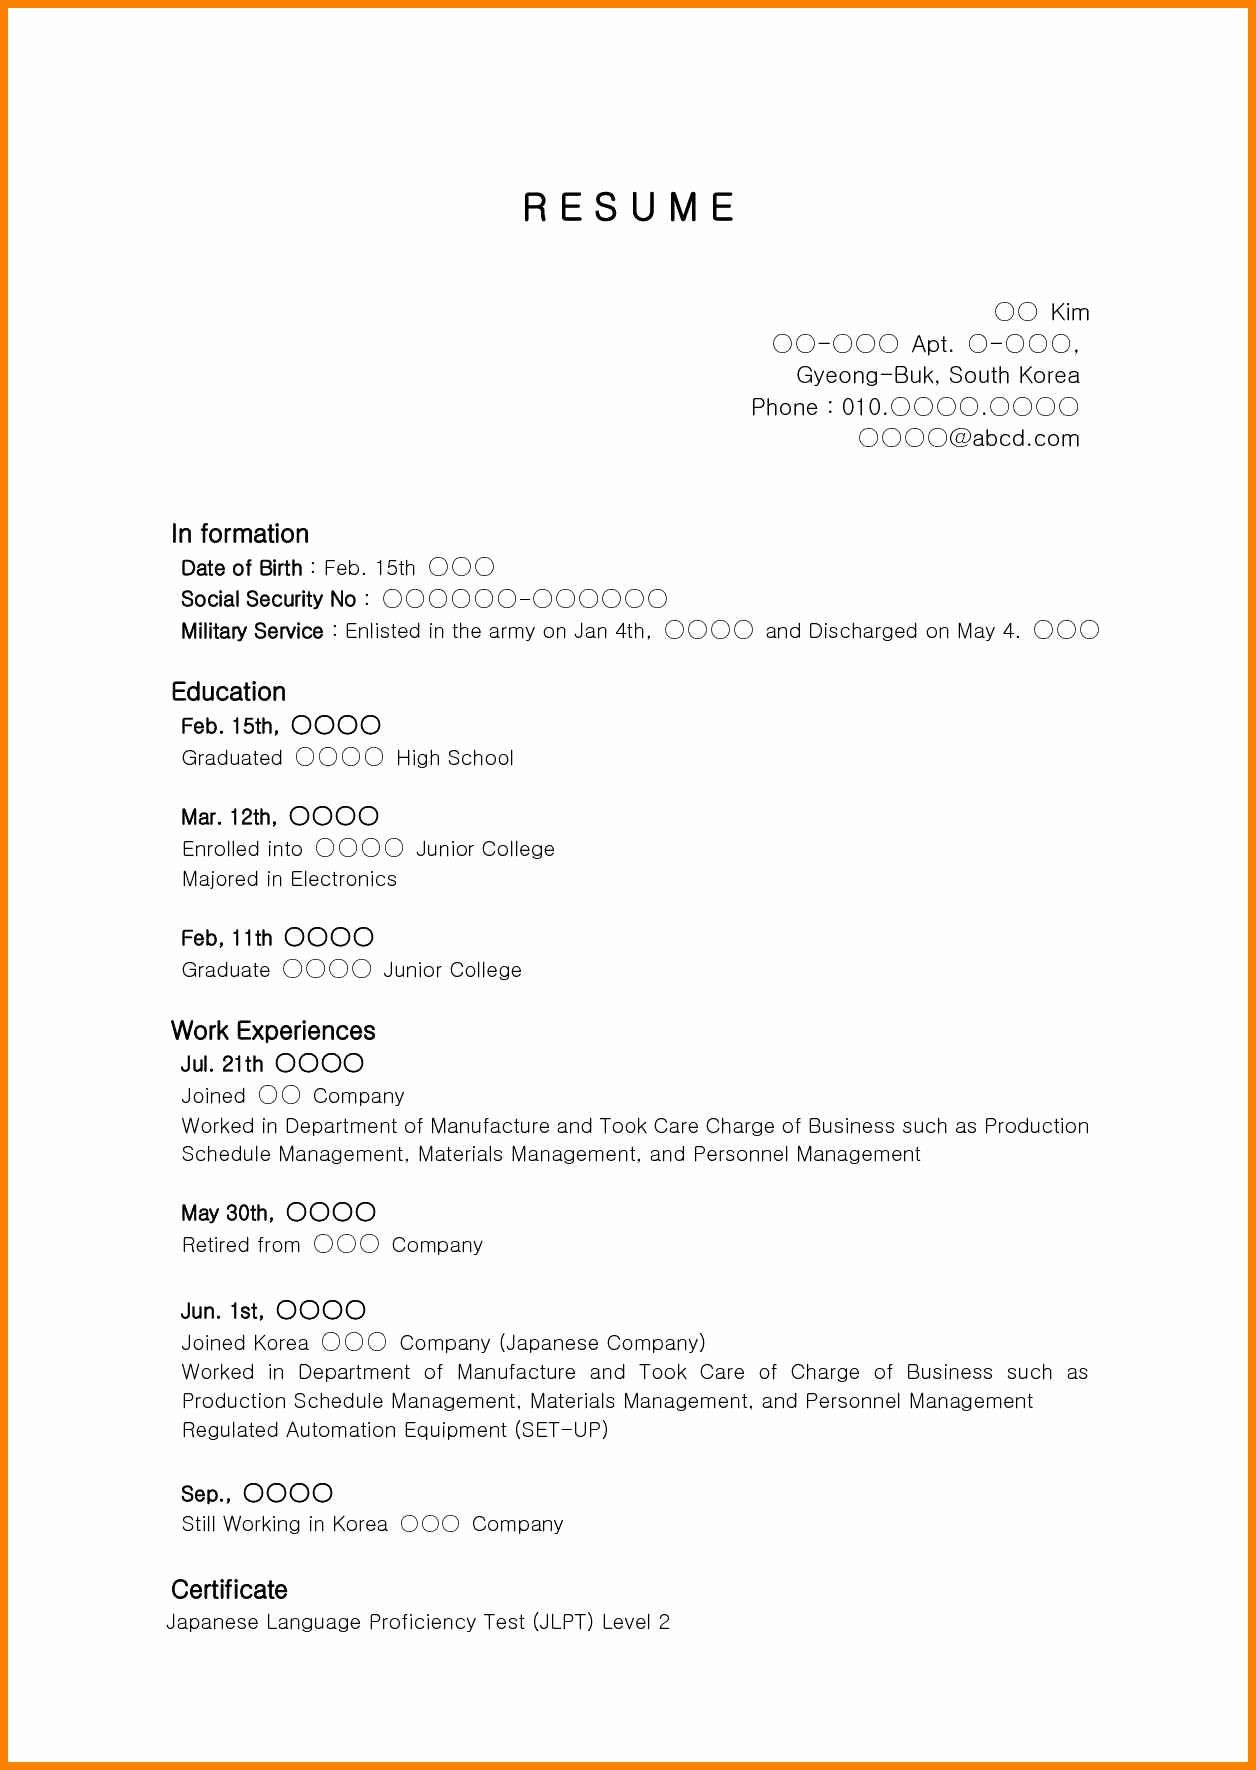 25 Resume Template for No Experience in 2020 High school